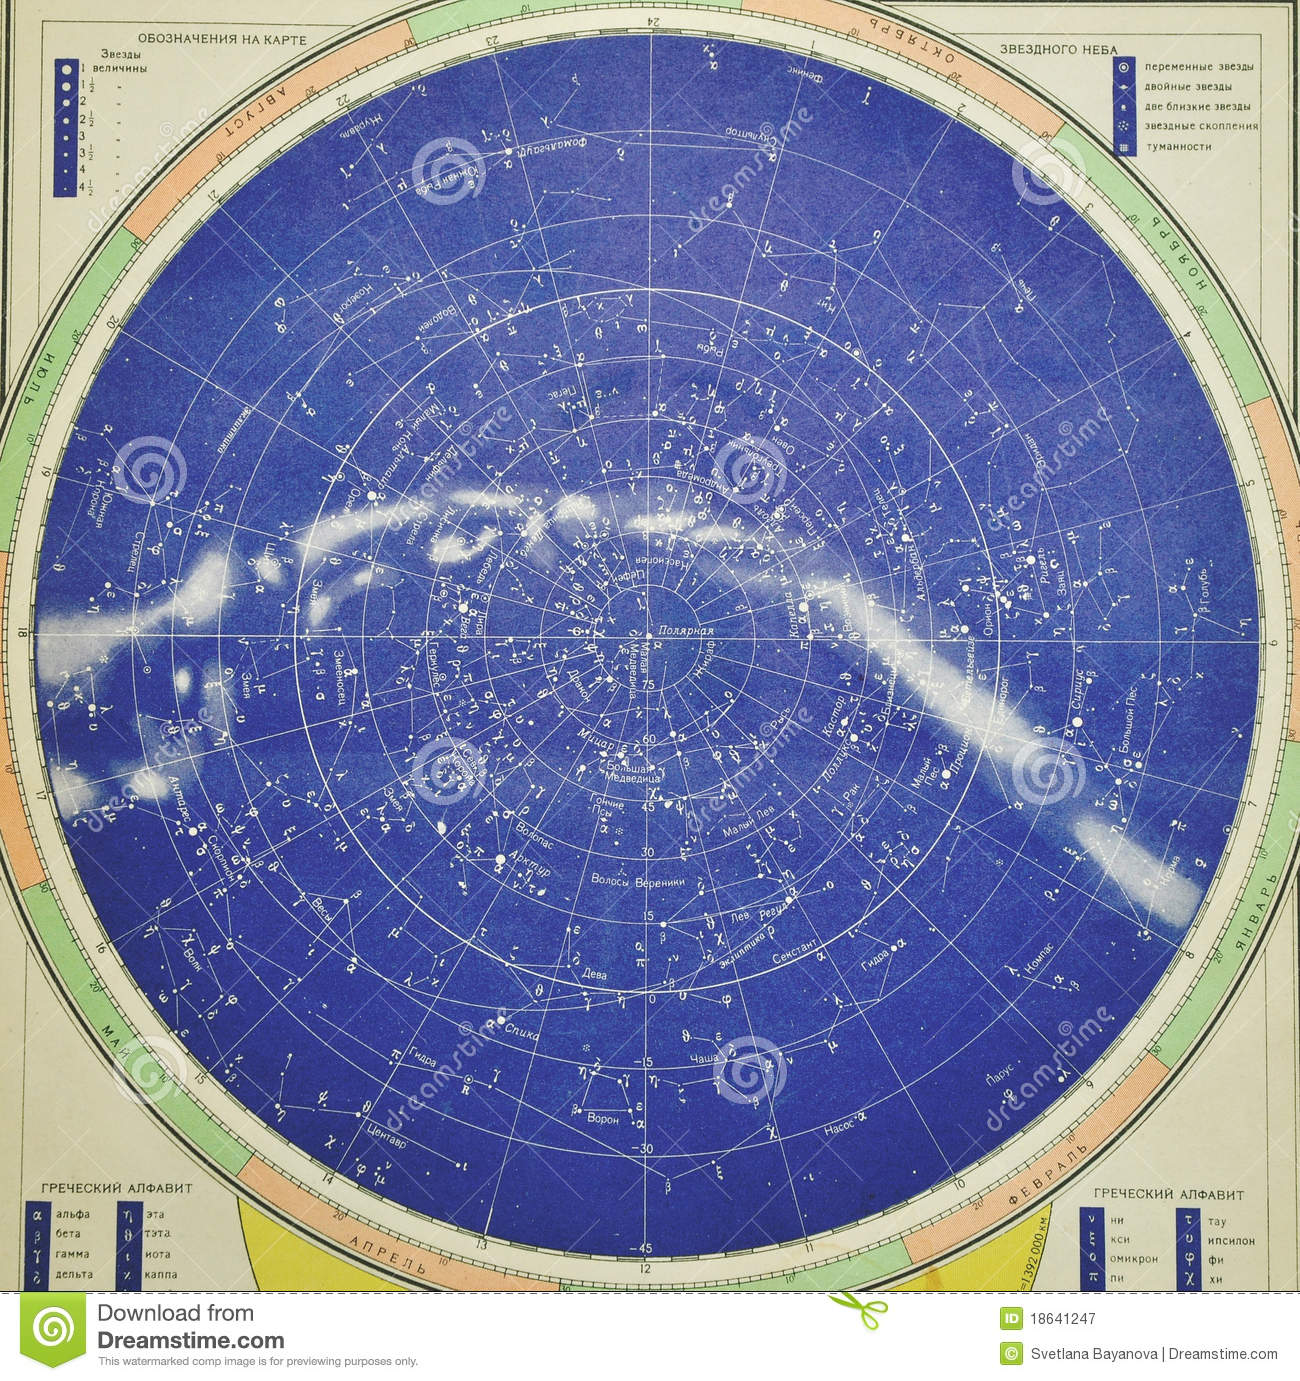 Old sky map stock image  Image of century, russian, constellation